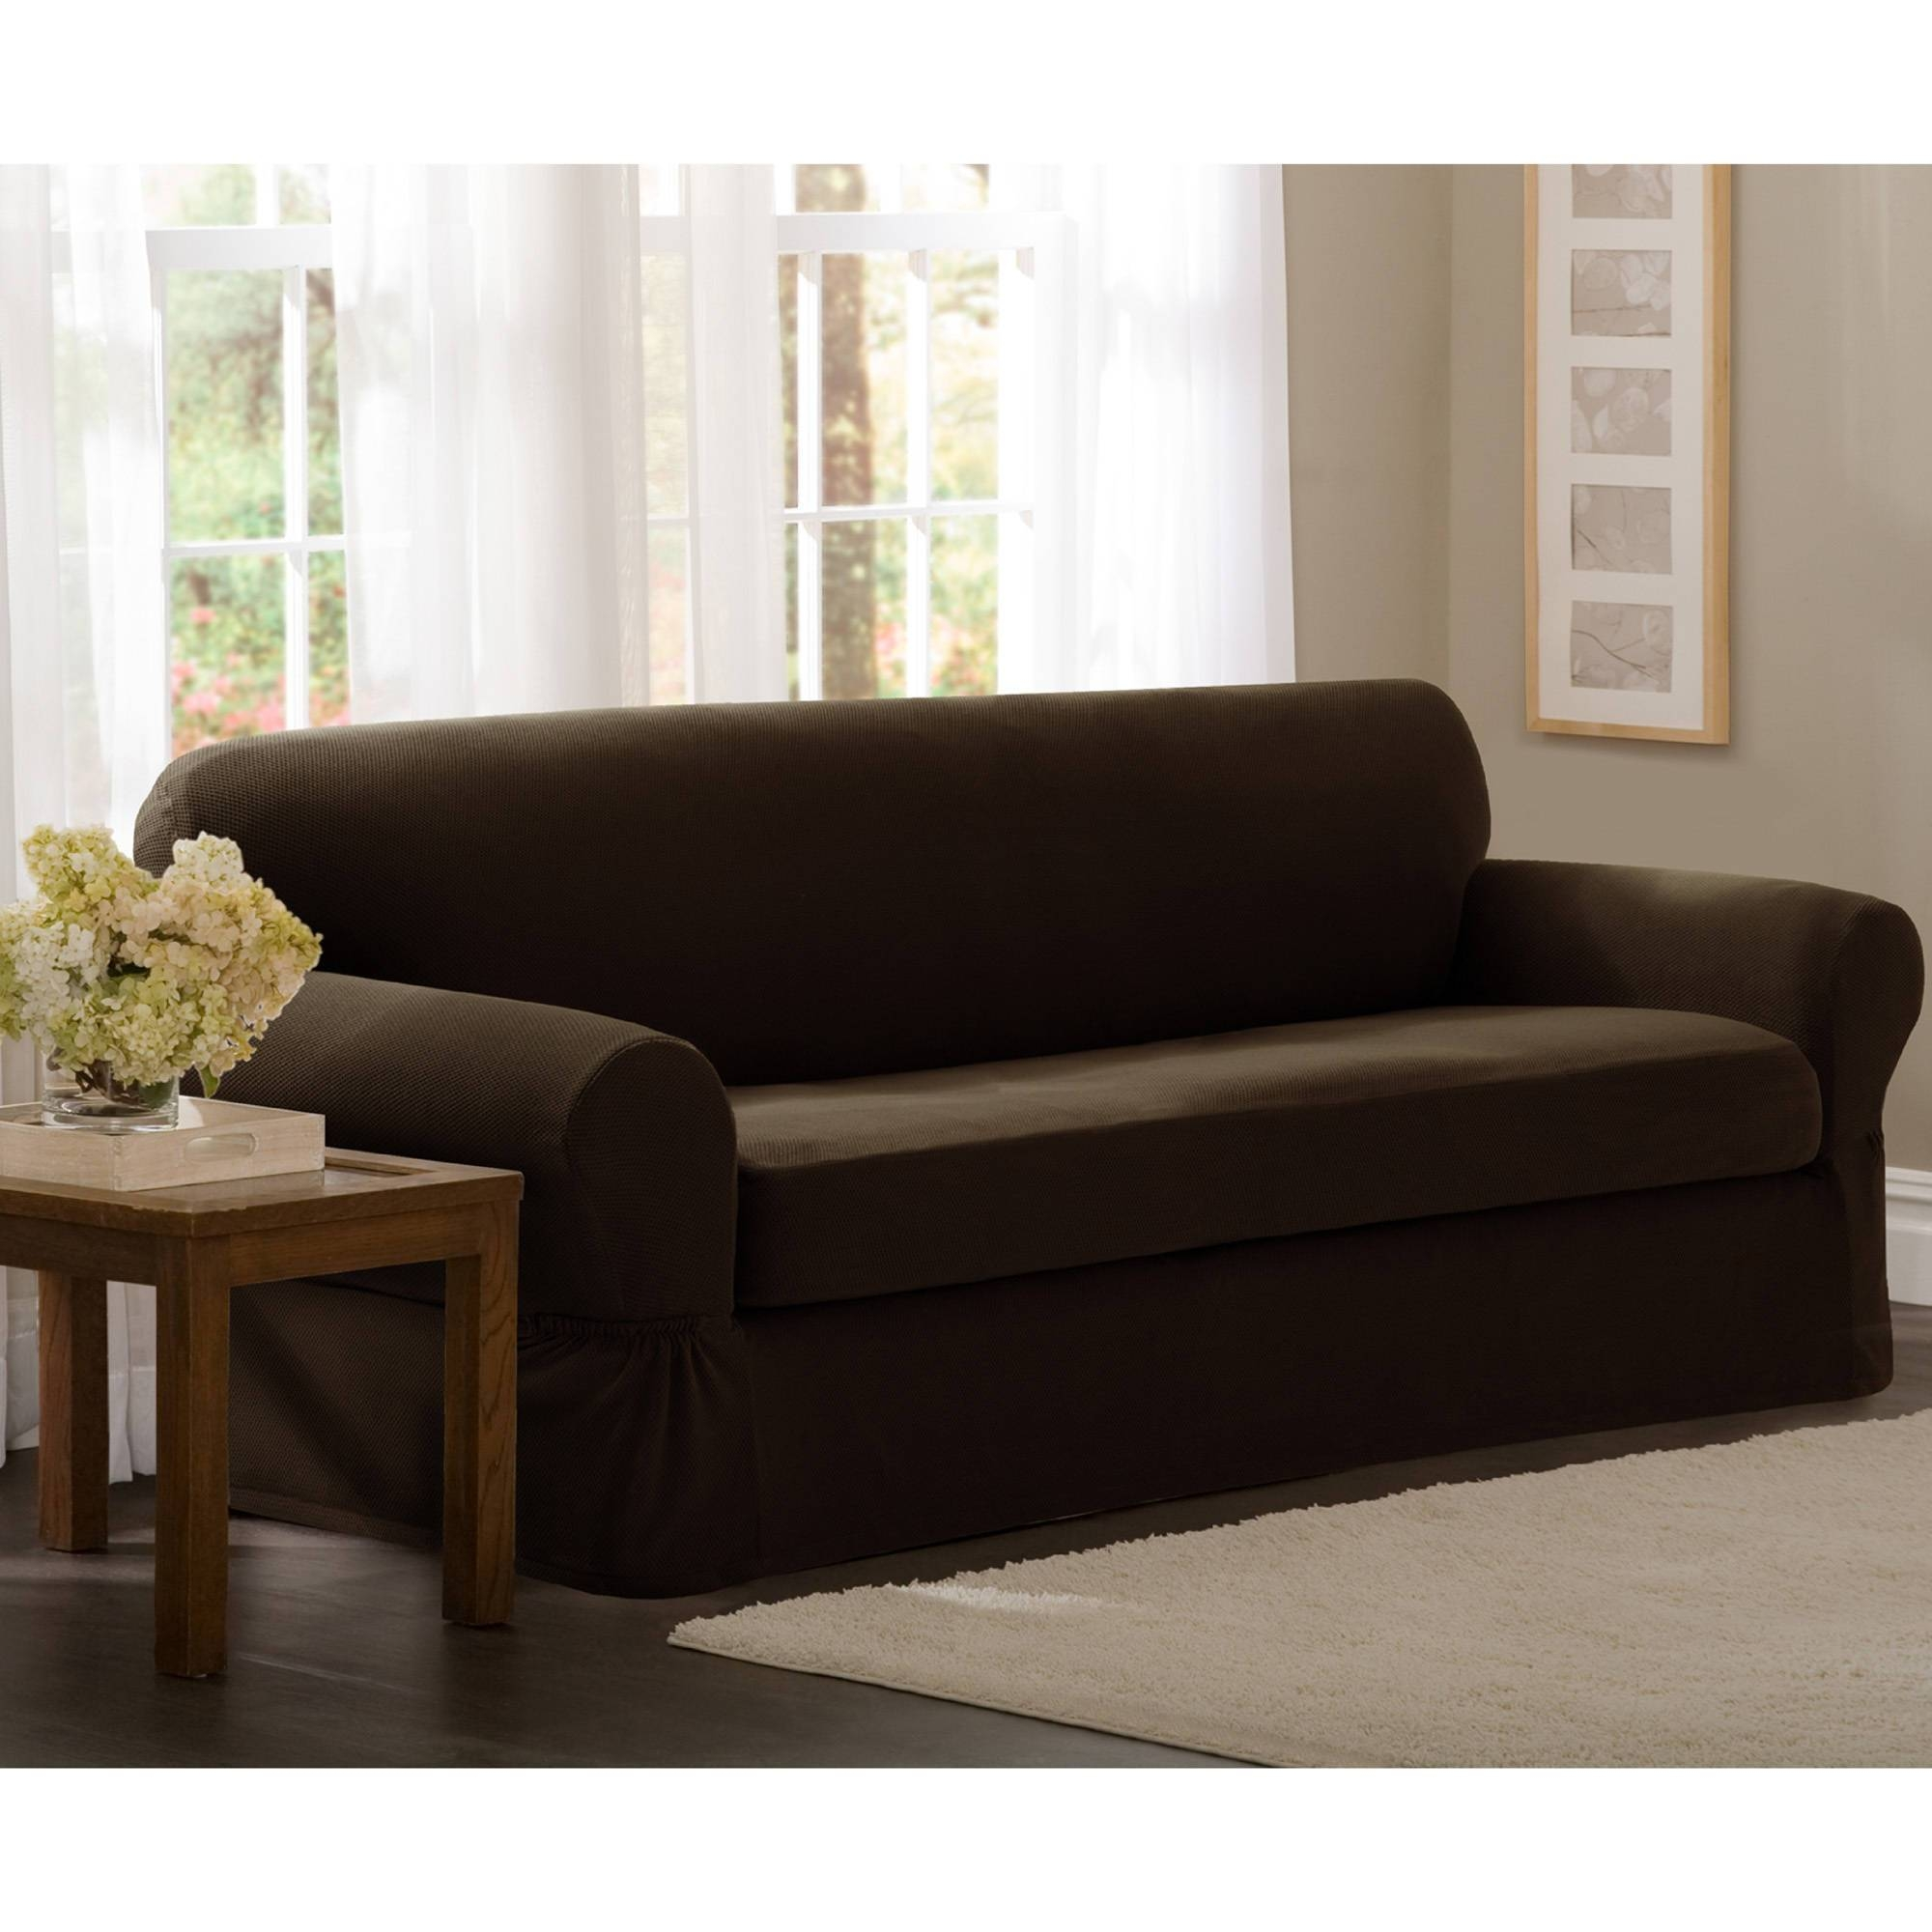 Furniture: Couch Protector | Couch Covers Walmart | Target Sofa Covers Throughout Chaise Sofa Covers (View 4 of 30)